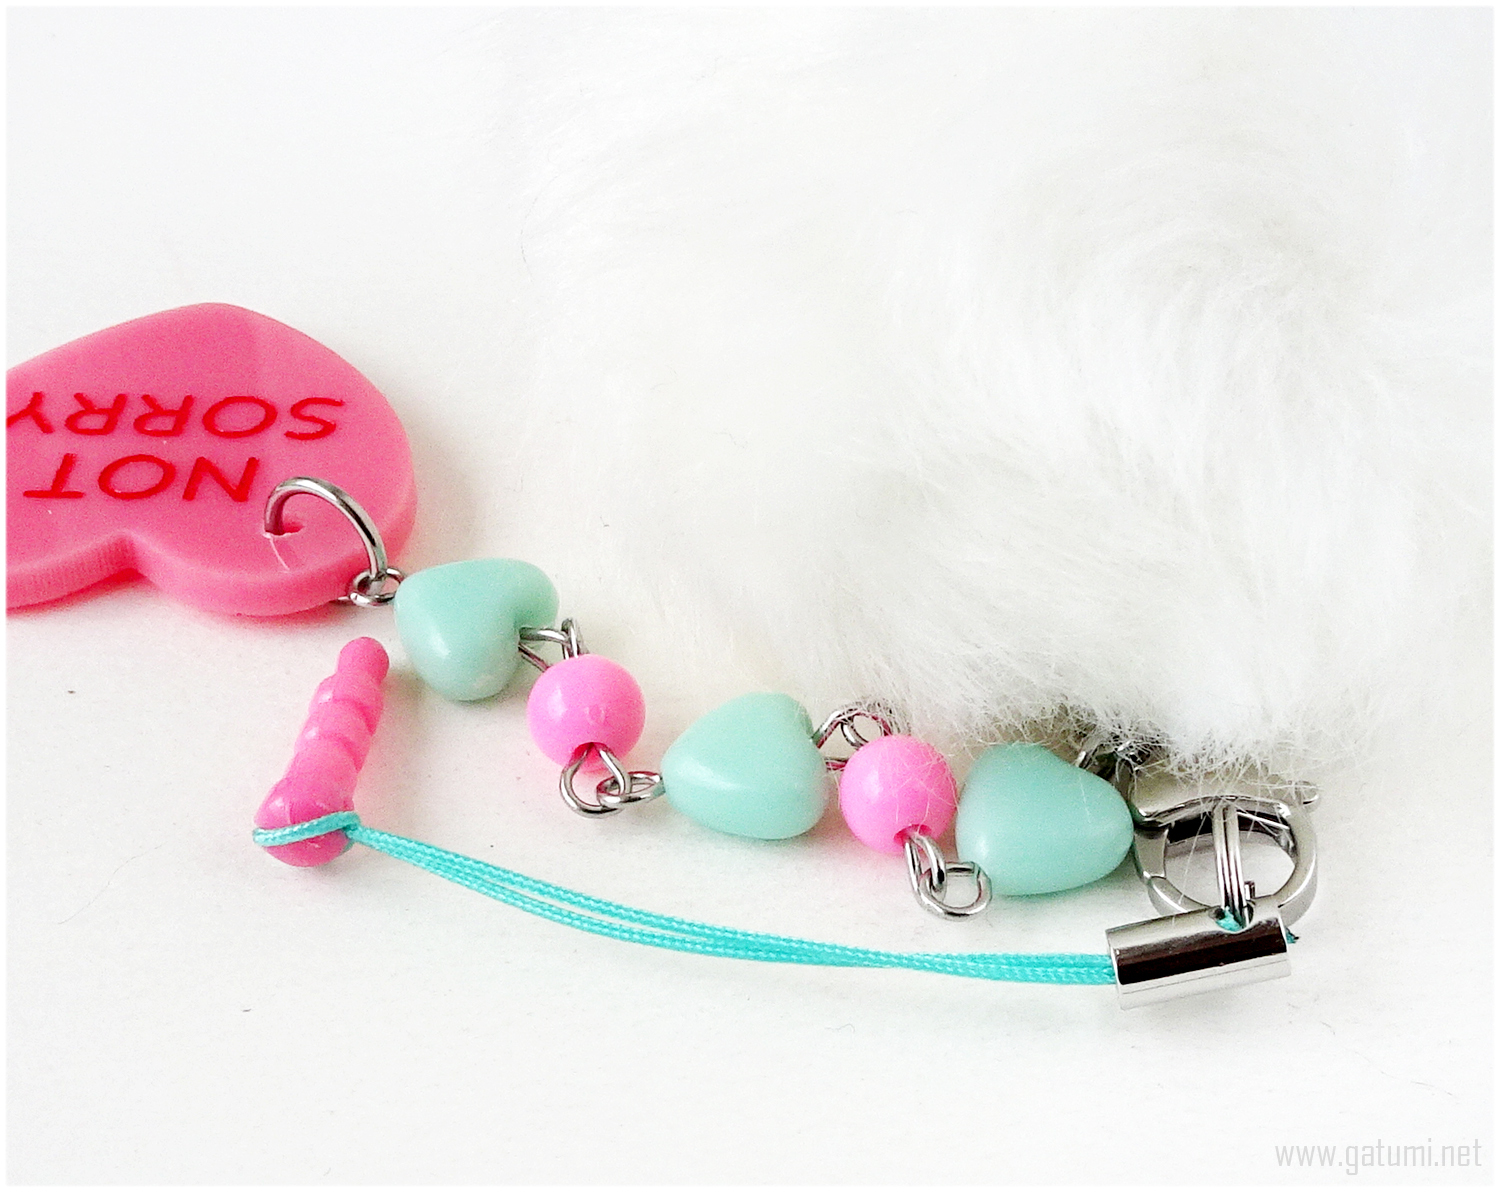 Not Sorry Pastel Goth Phone Charm Plug with Pom Pom, Kawaii, Jfashion